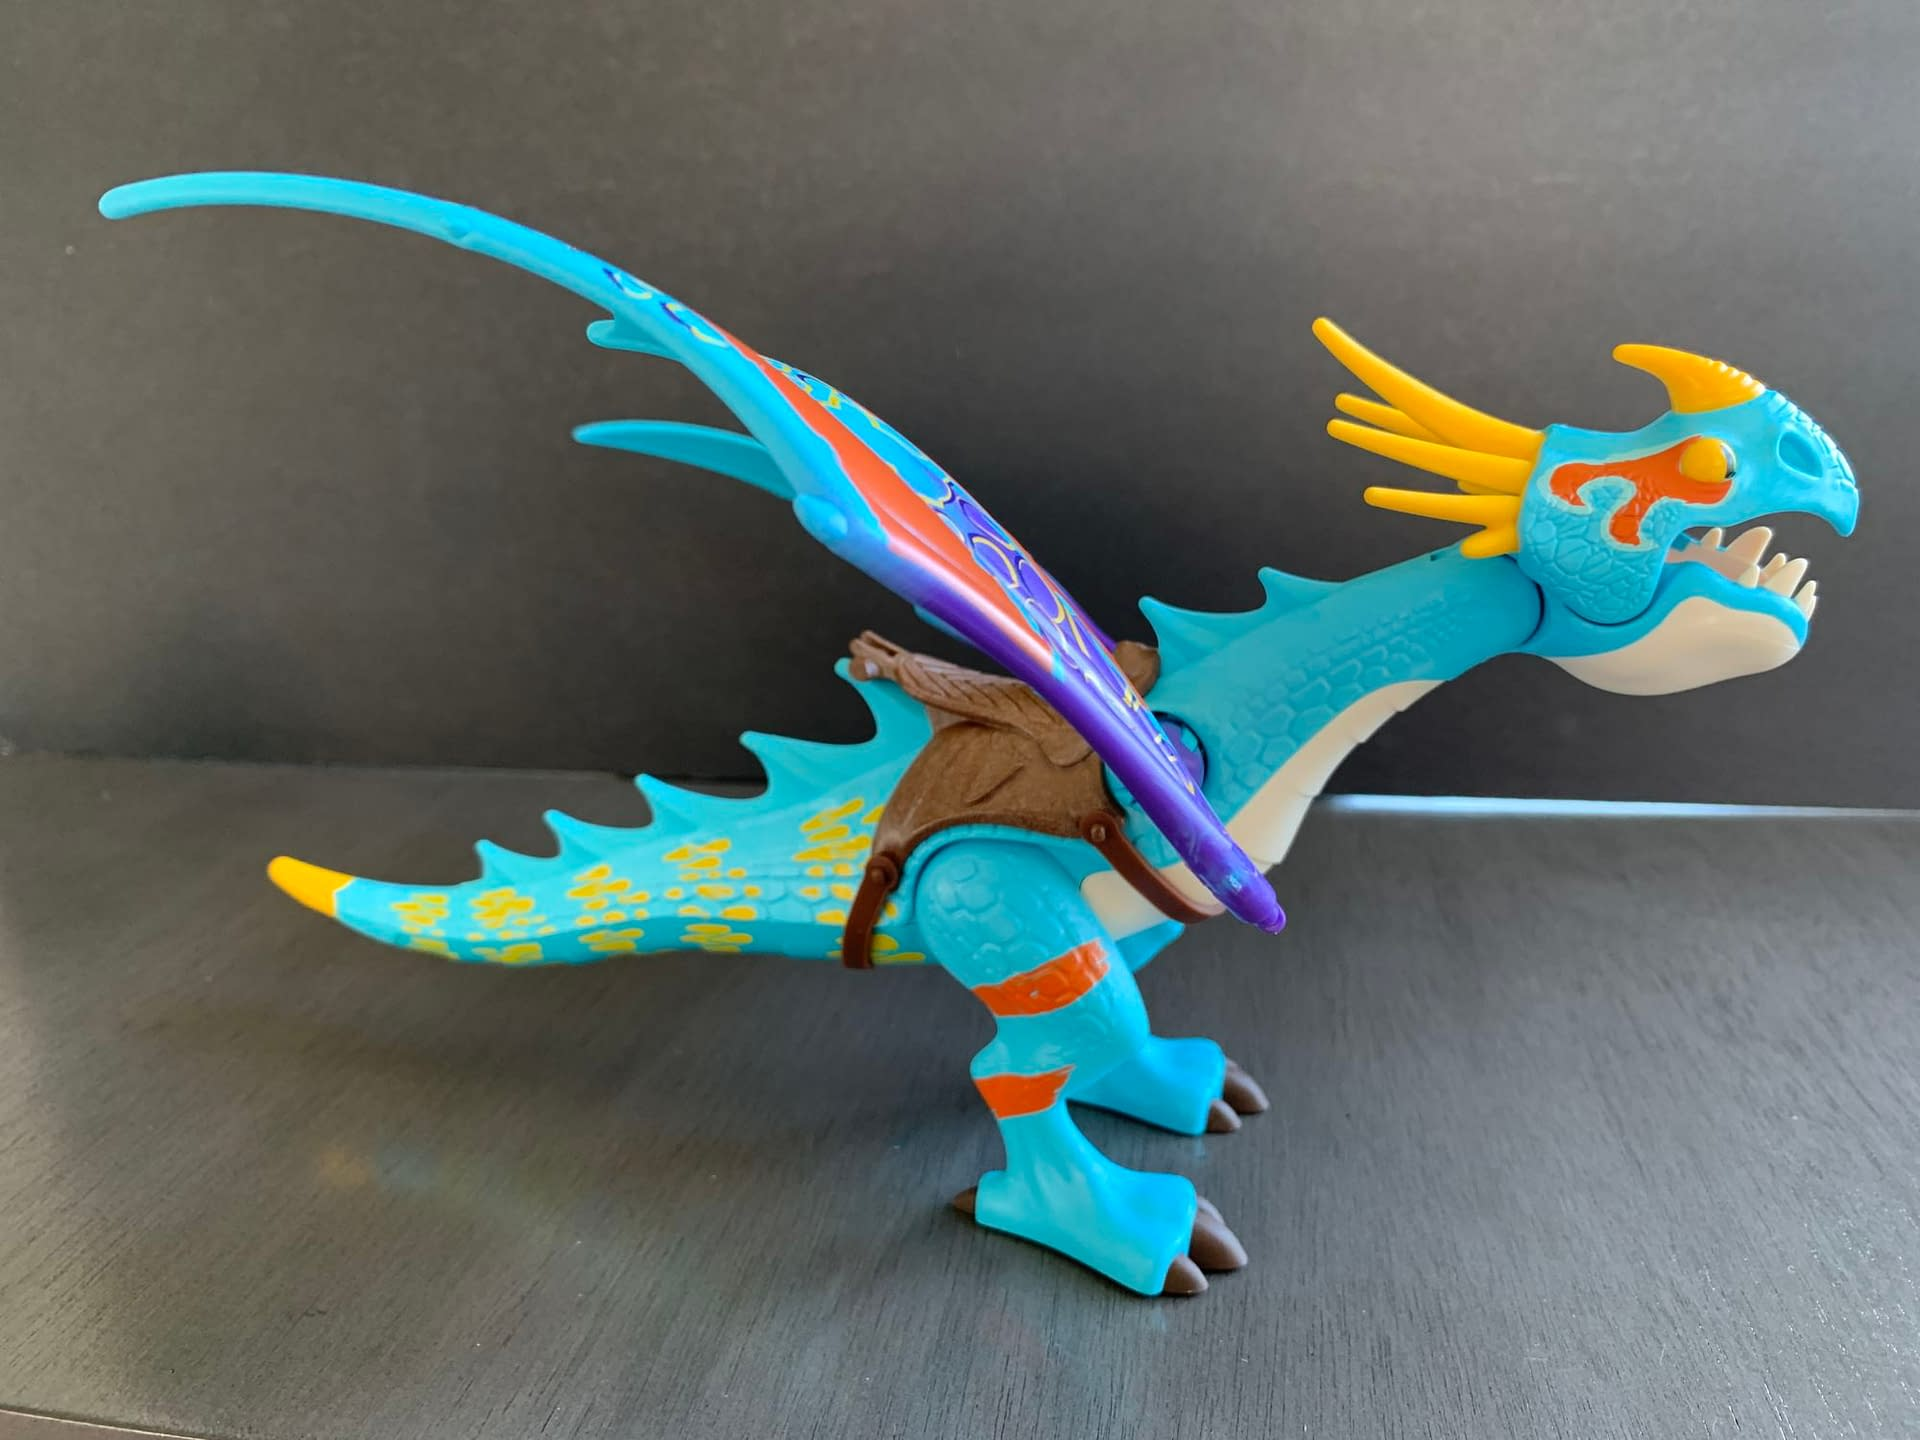 Let's Take A Look At Playmobil's New Dragons Playsets